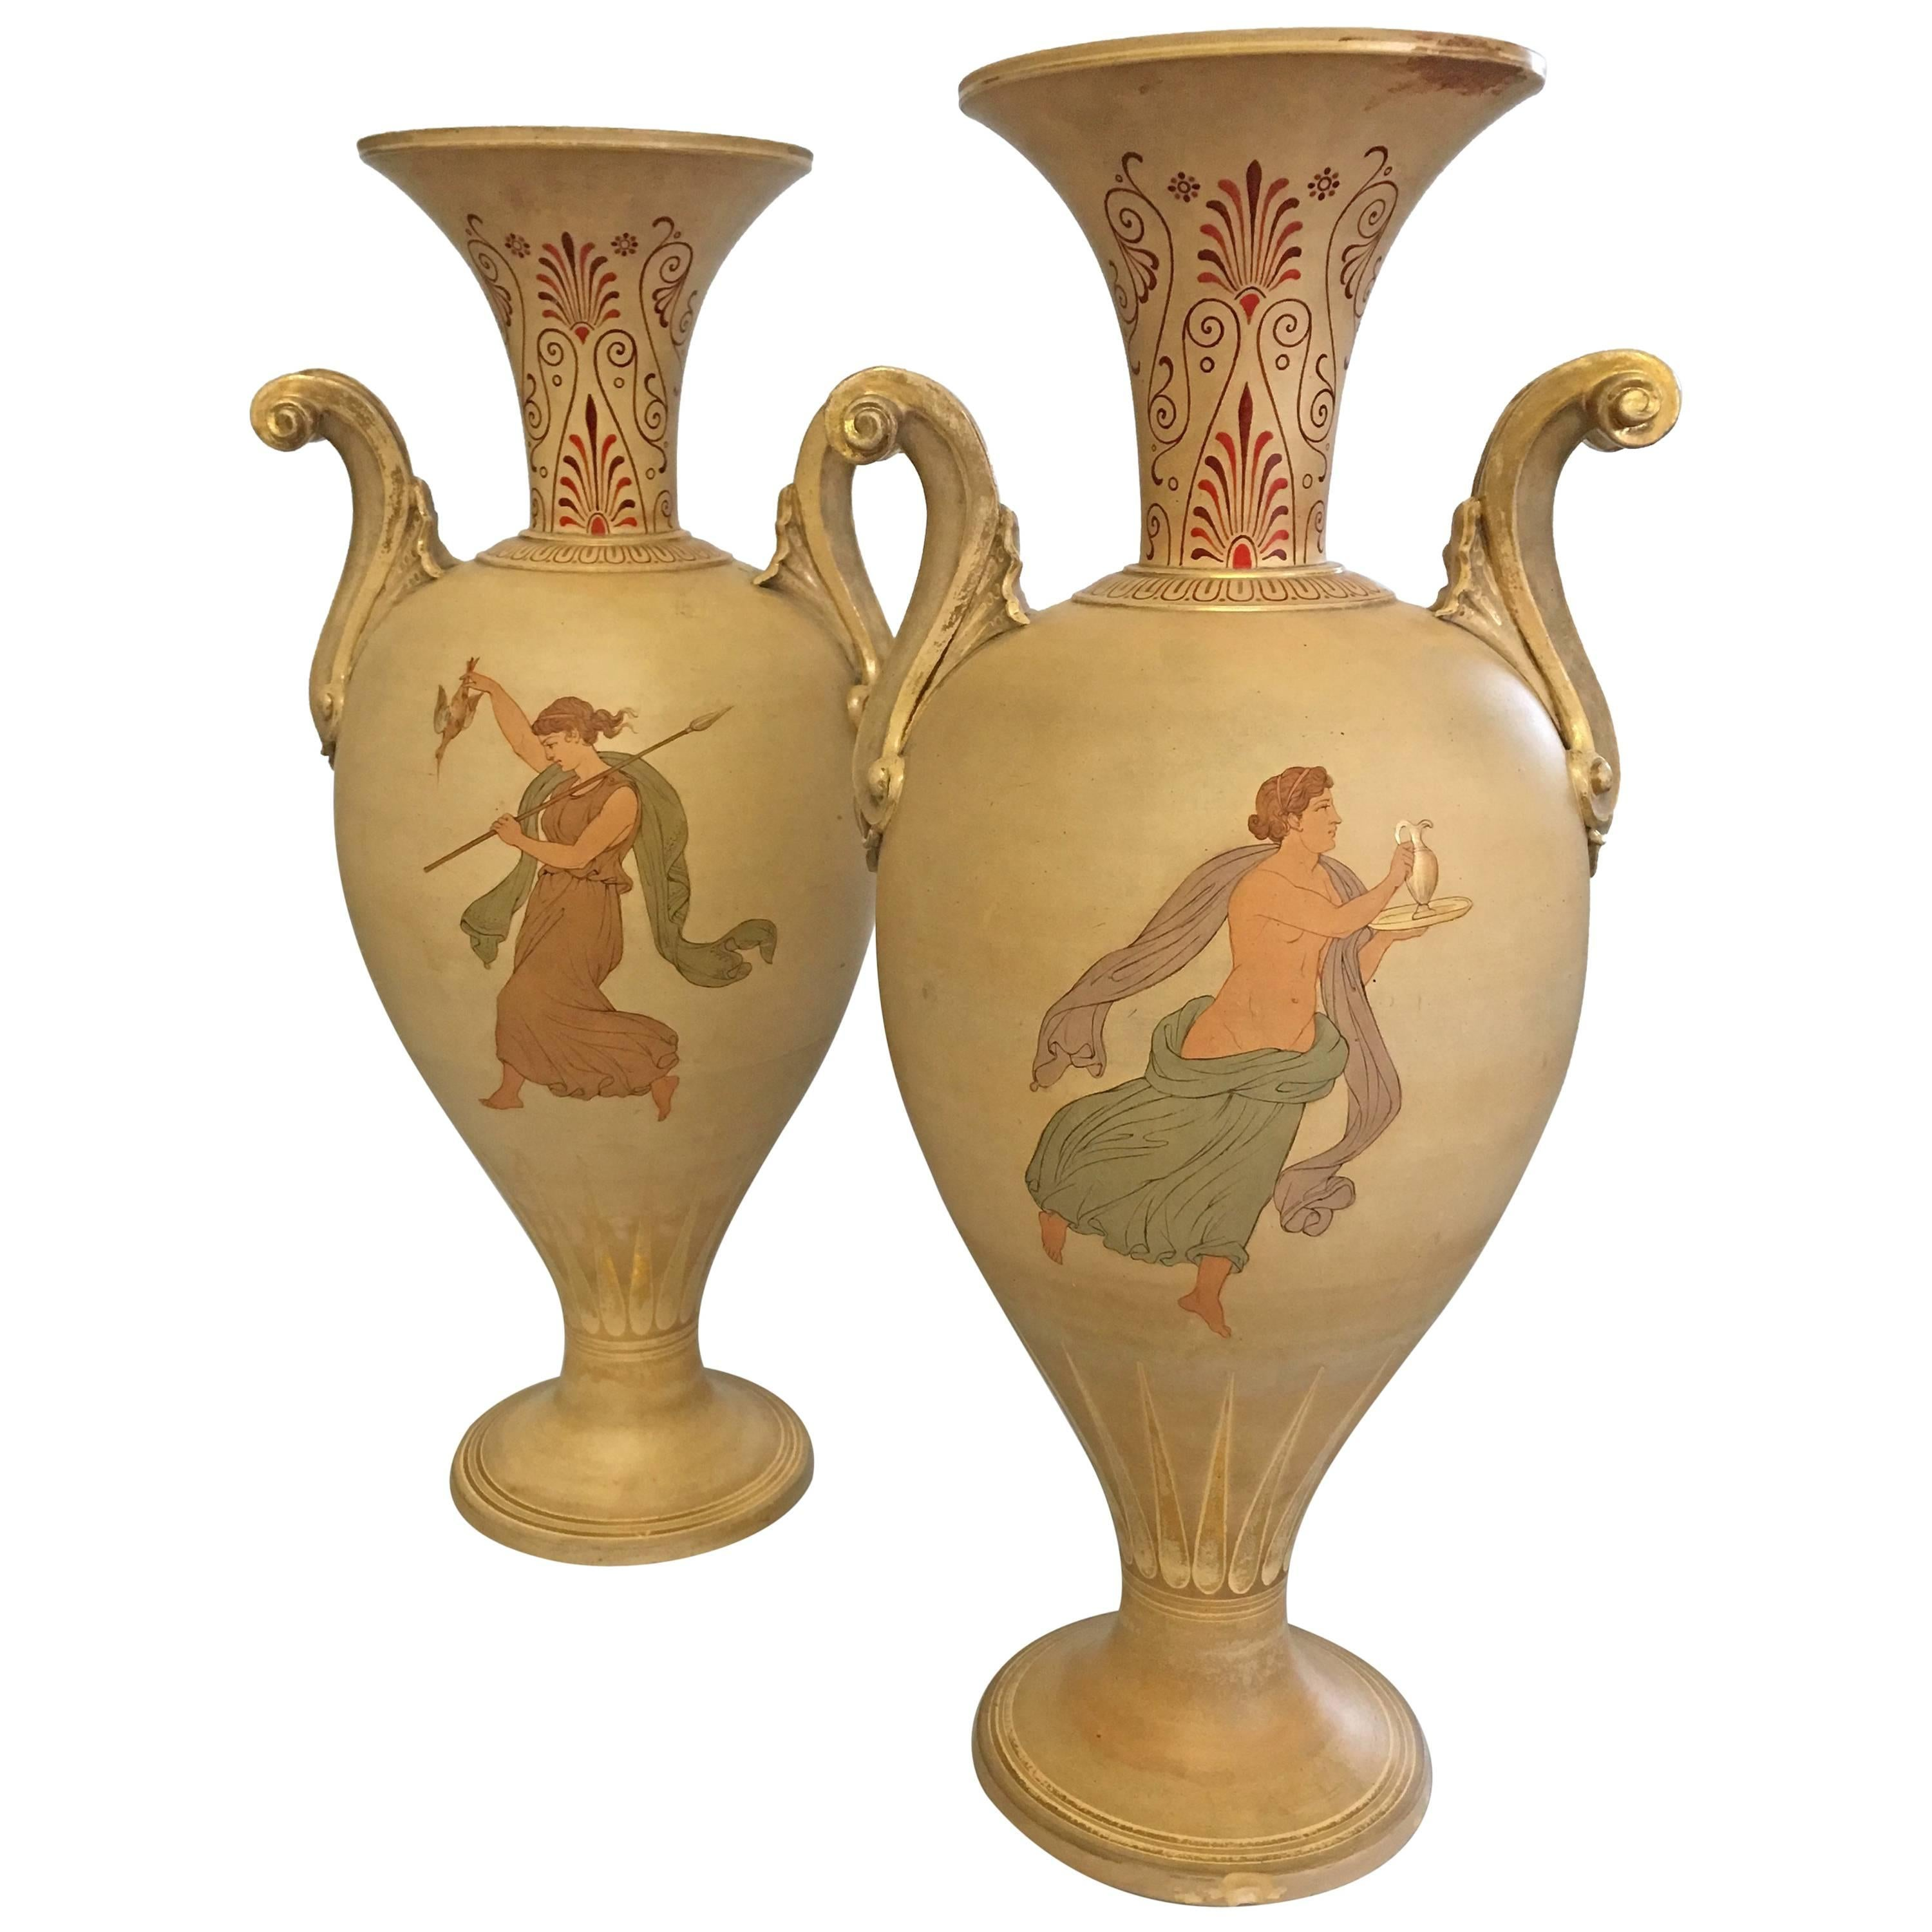 Classical greek vase erotic for sale at 1stdibs reviewsmspy